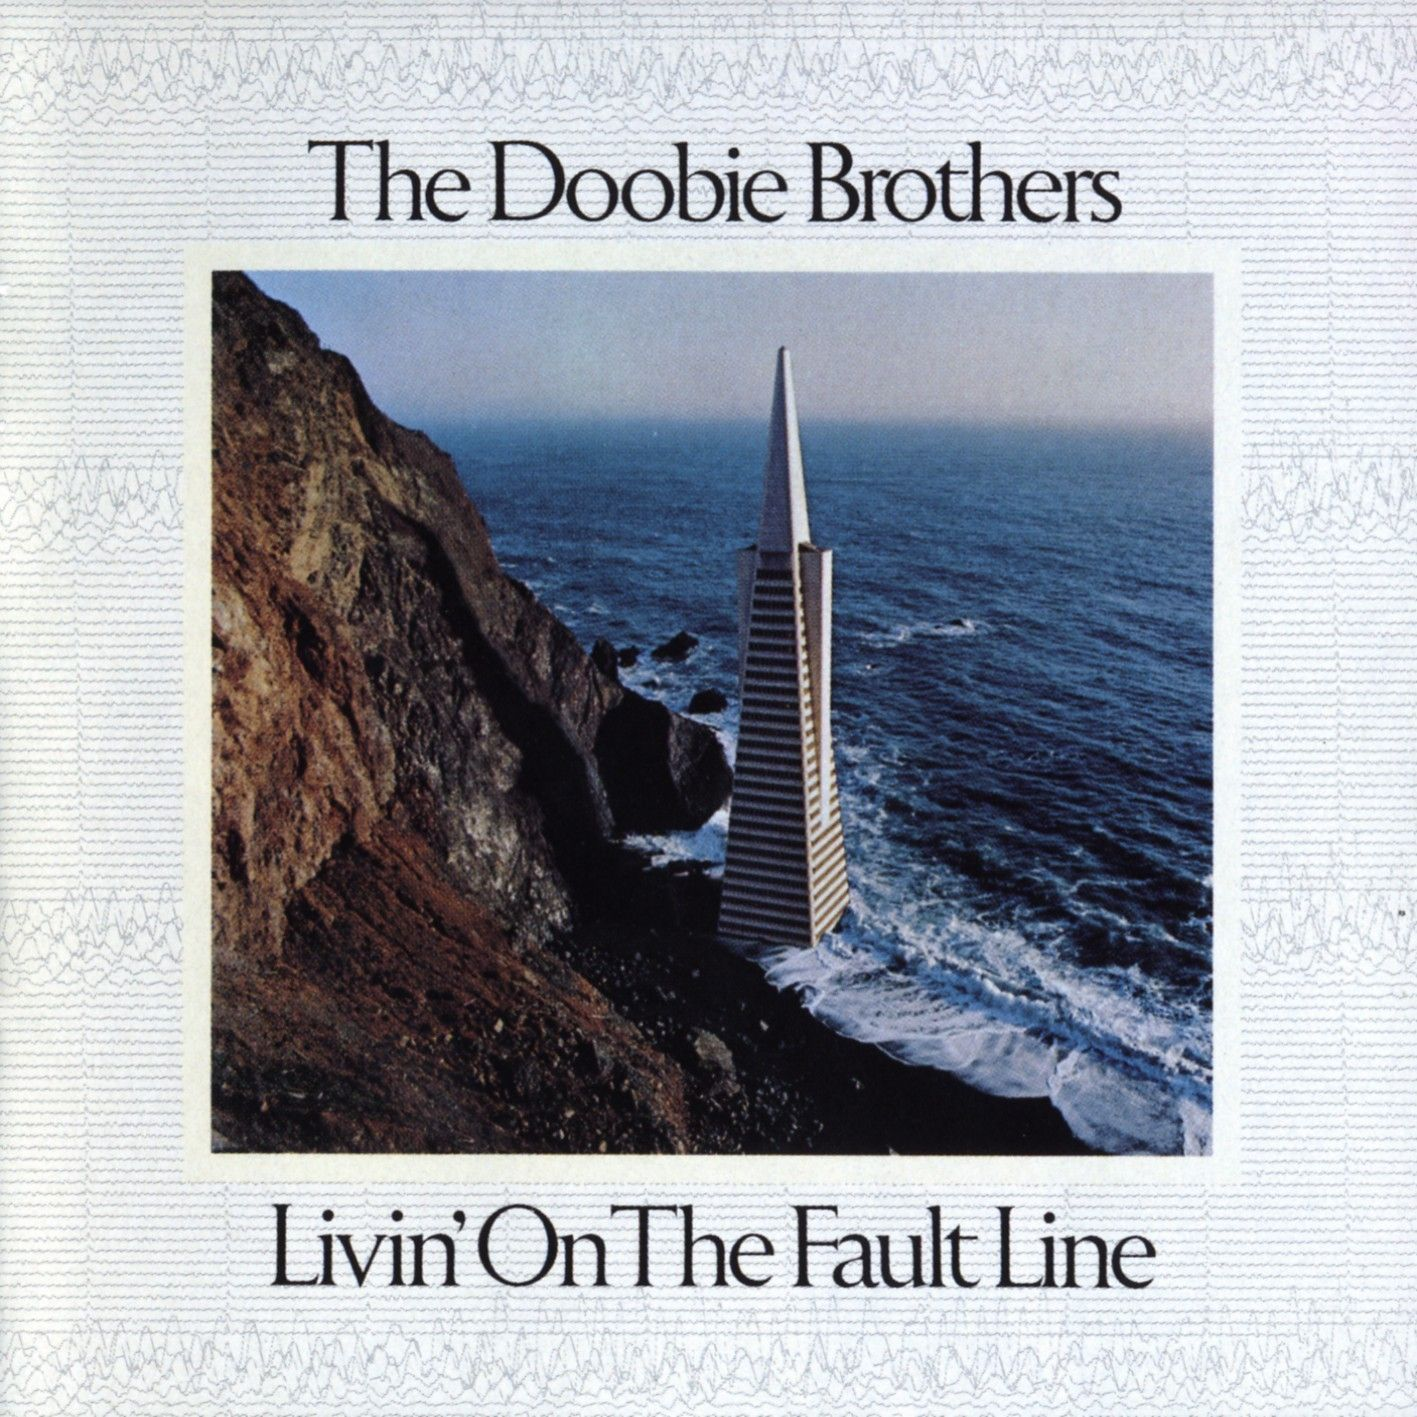 1977 The Doobie Brothers – Livin On the Fault Line